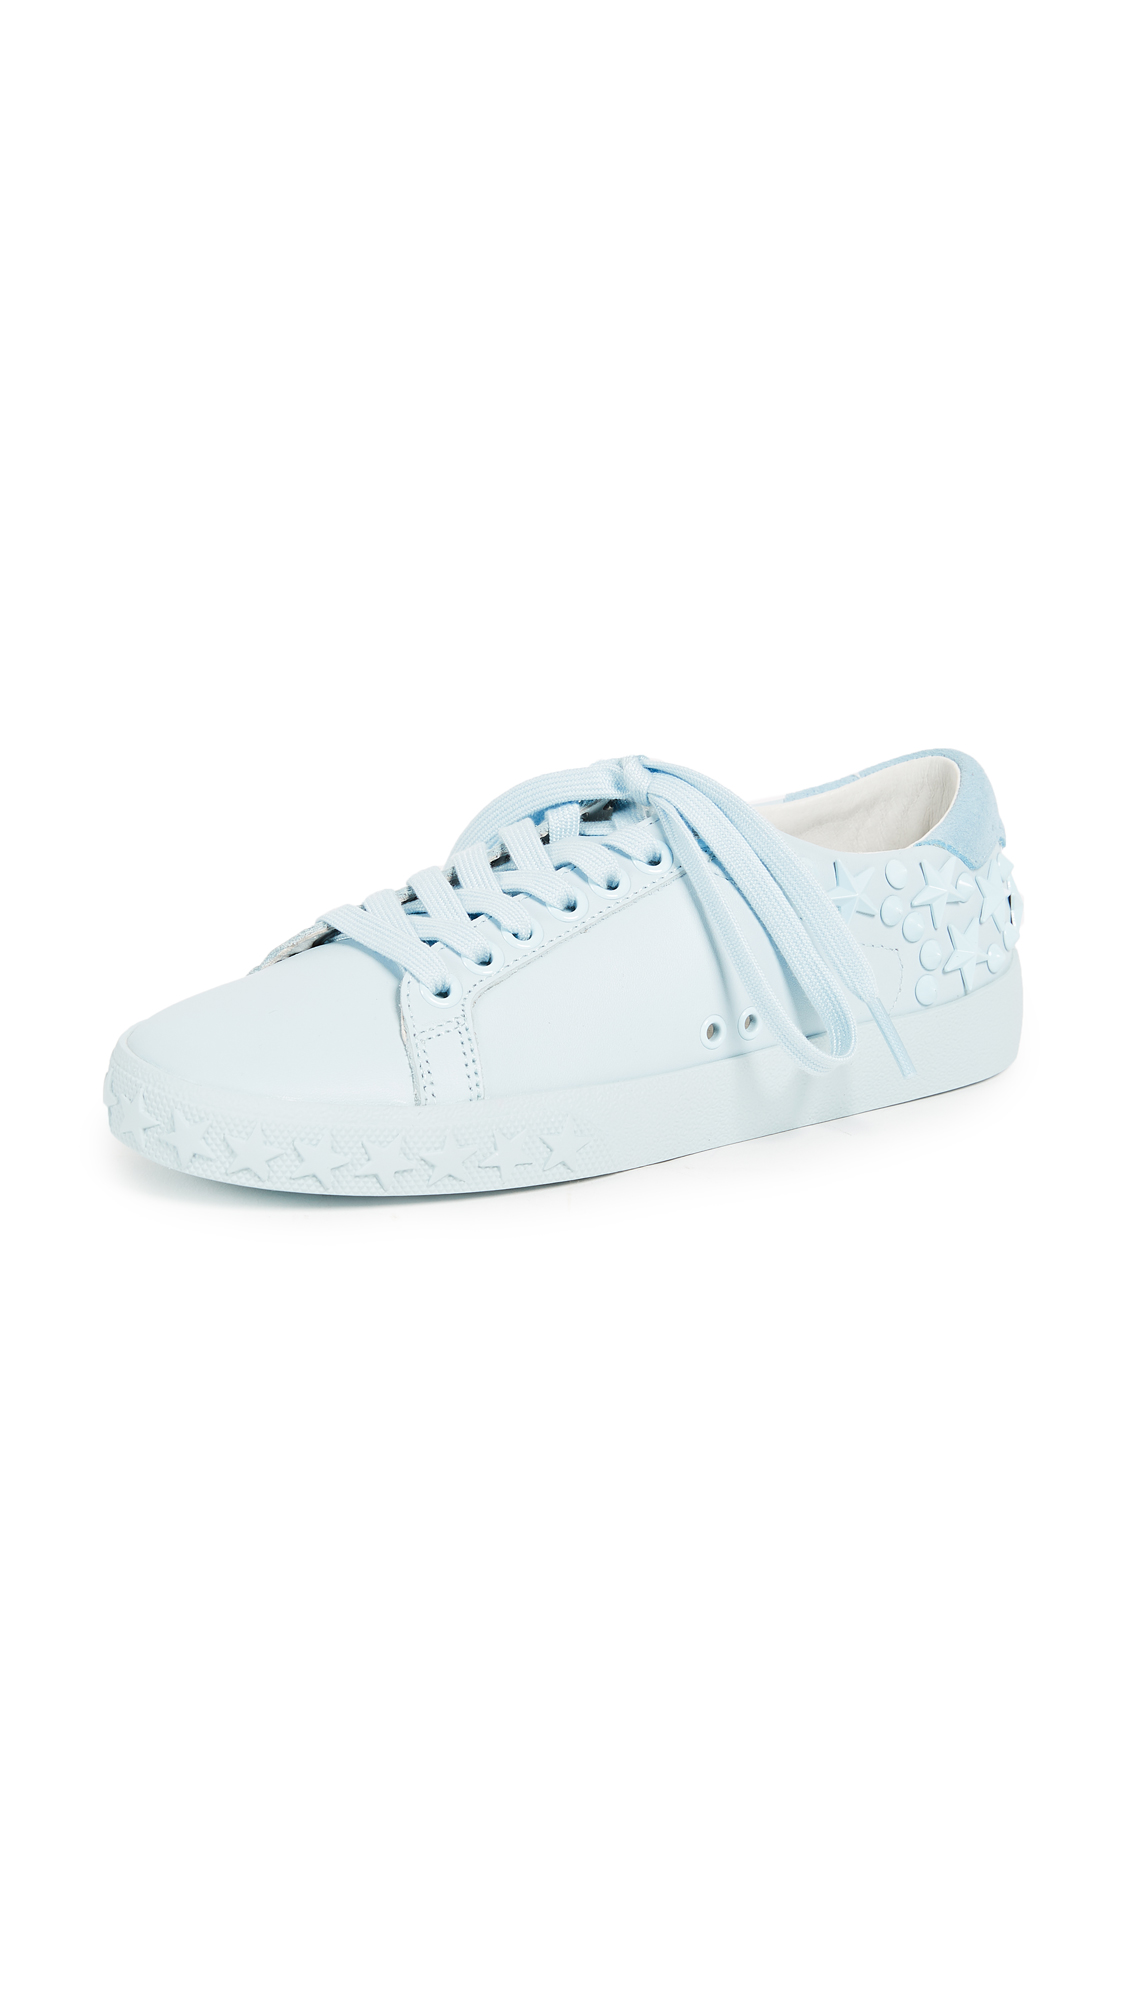 Ash Dazed Sneakers - Ice Blue